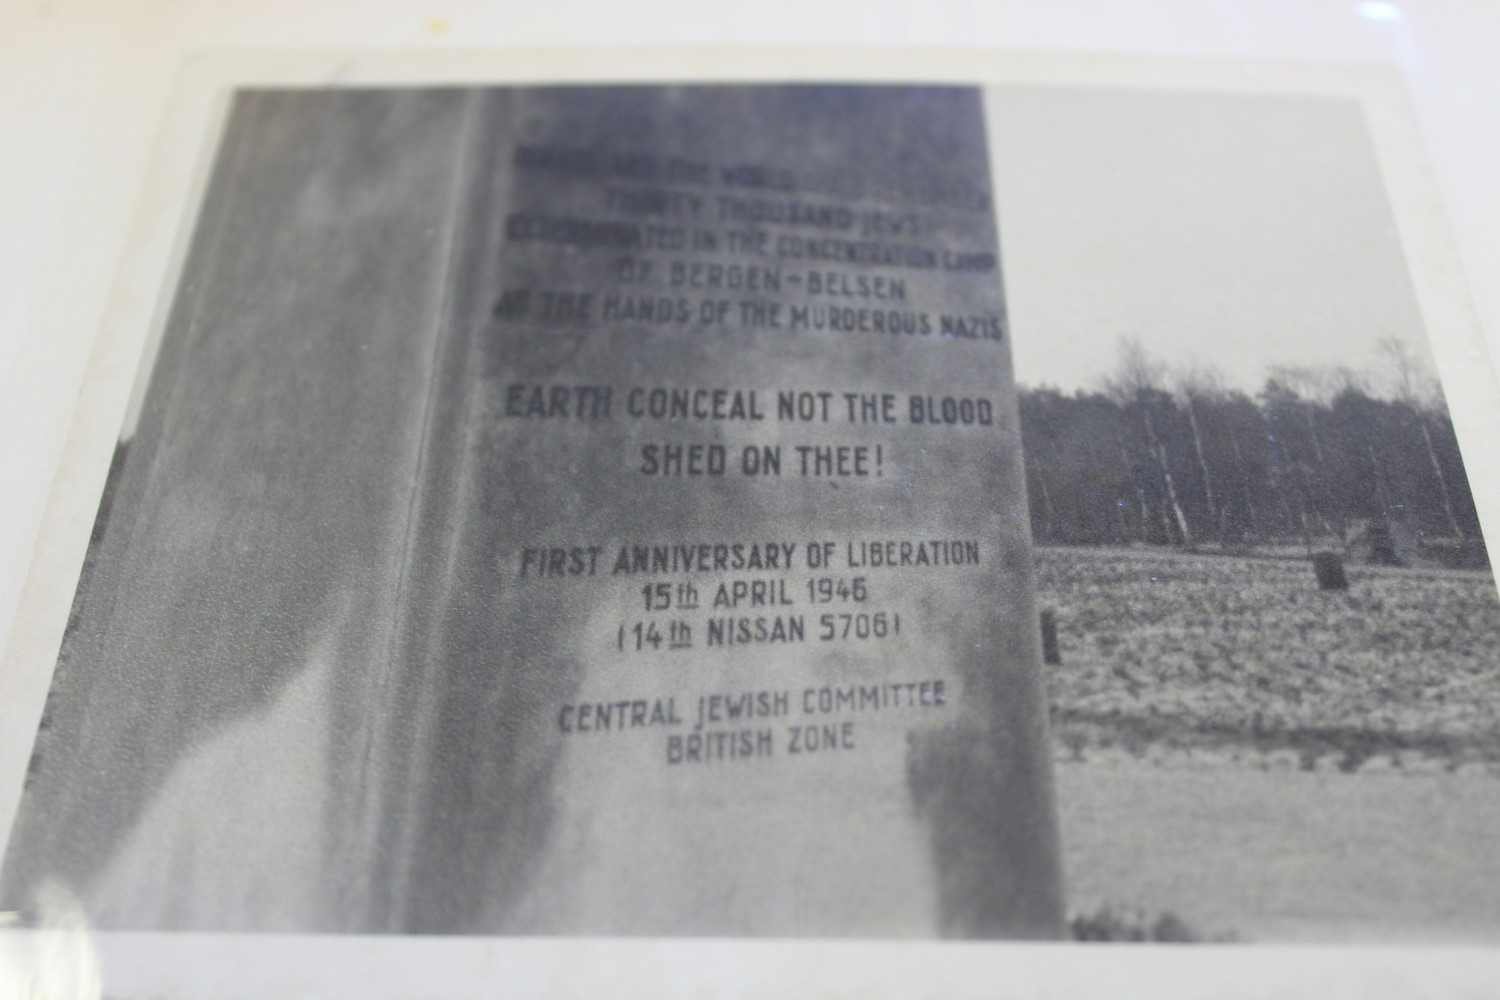 The Bergen-Belsen sign at the entrance to the notorious concentration camp that so moved Maness while stationed in Germany.